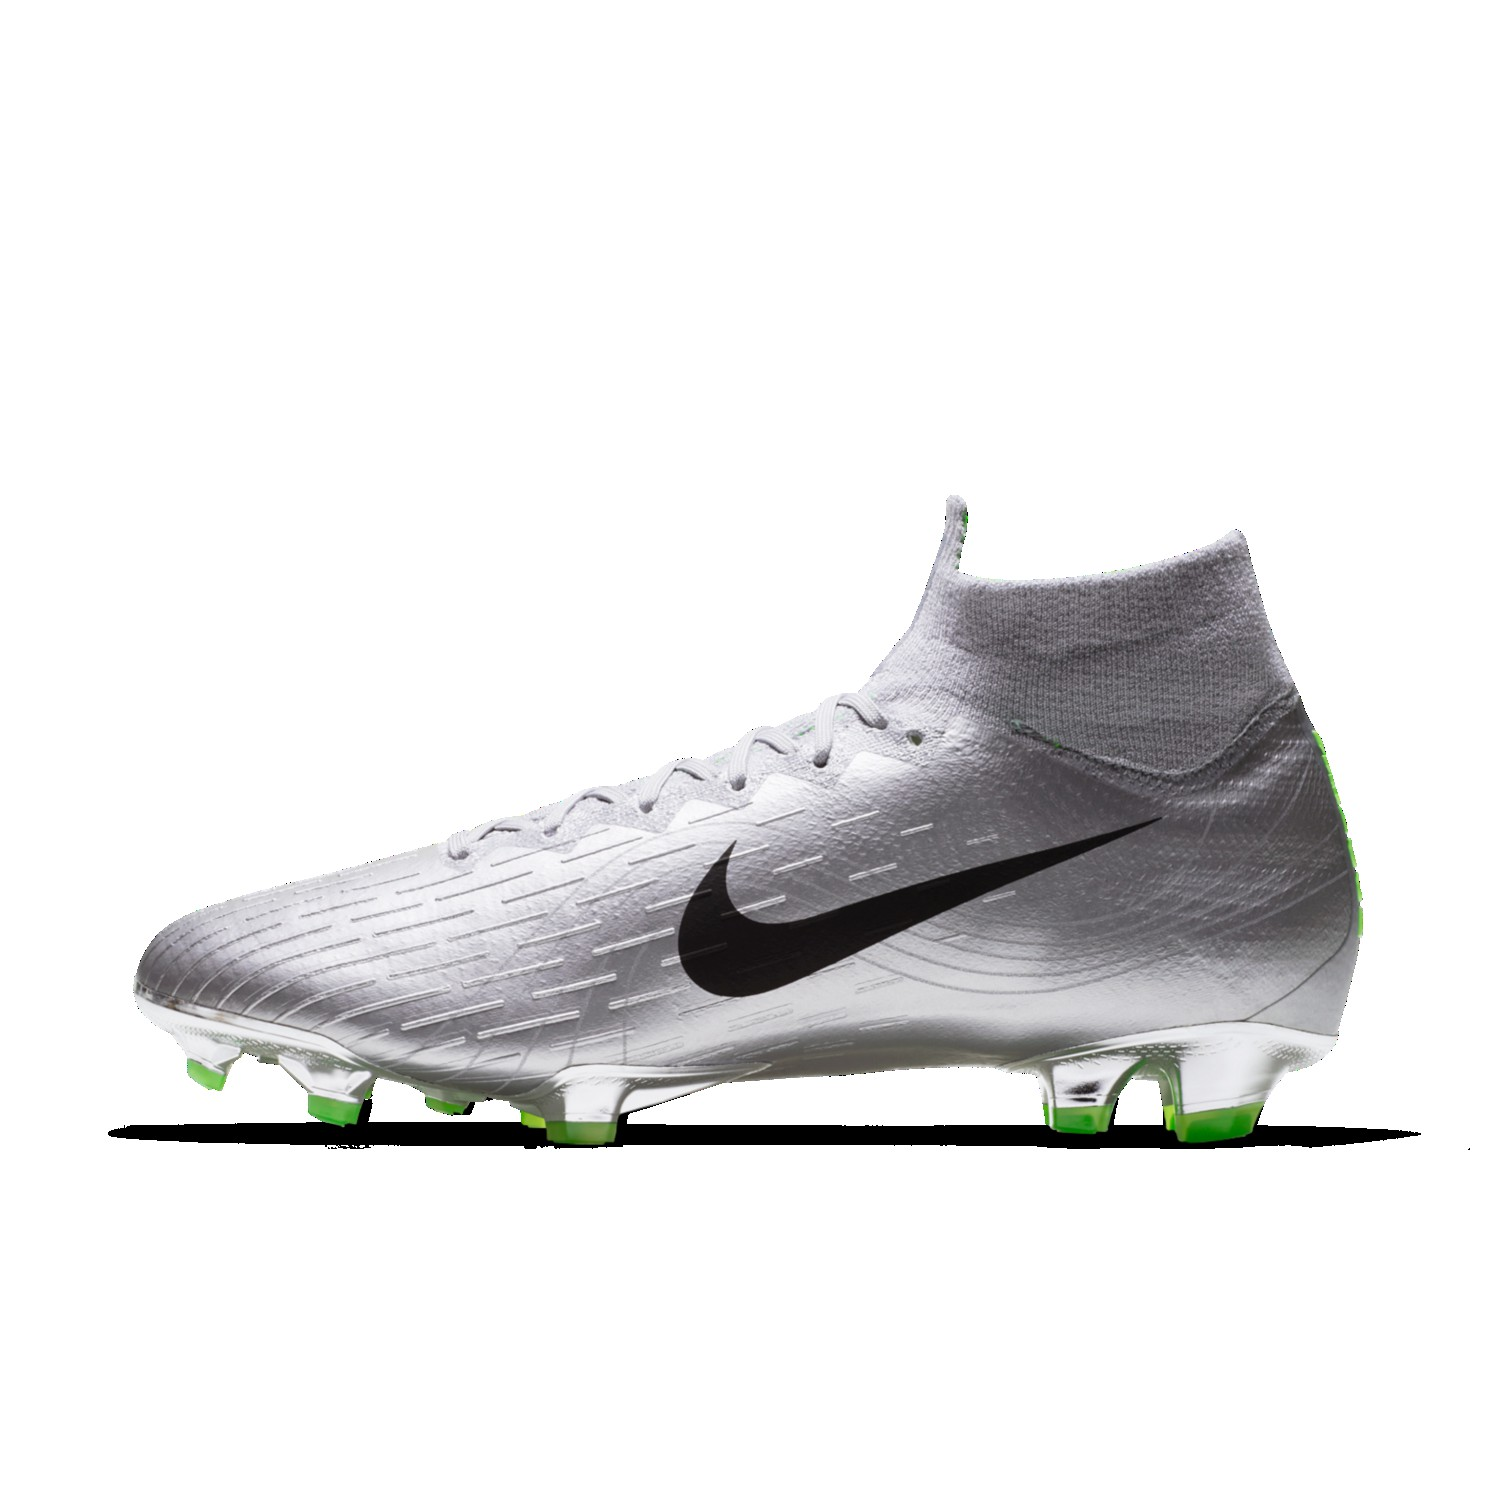 the best attitude b25c4 846e3 Nike Mercurial Superfly 360 Elite 2002 iD Football Boots ...